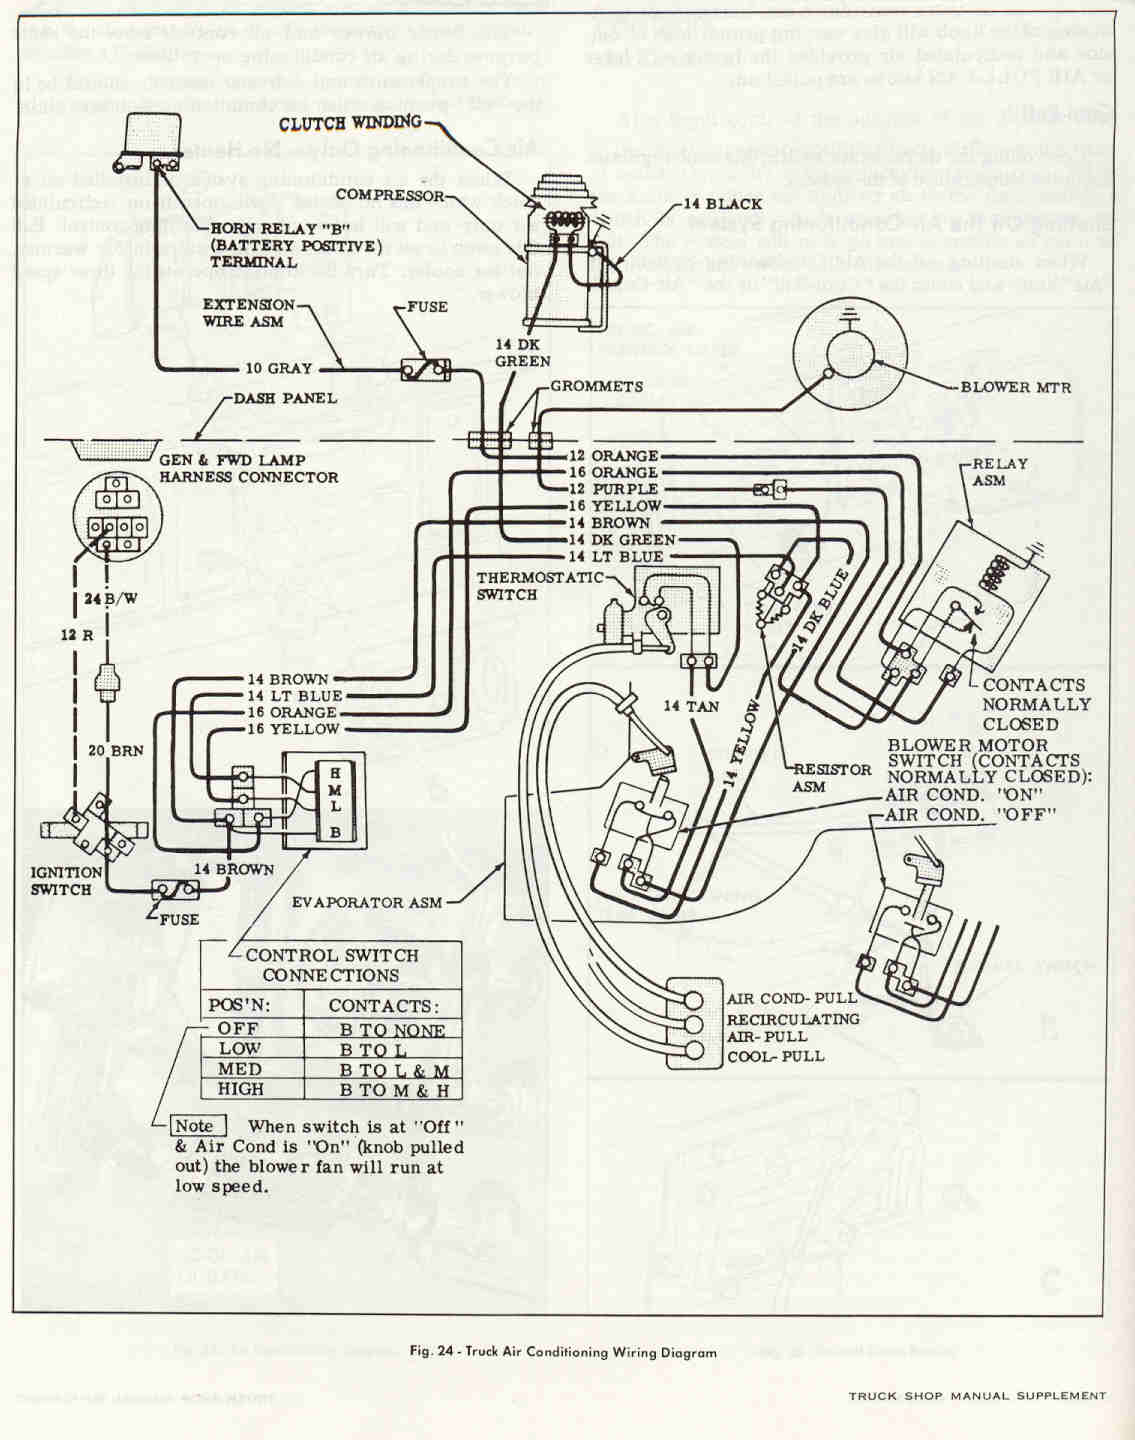 Chevy C10 Wiring Diagram Full Hd Version Wiring